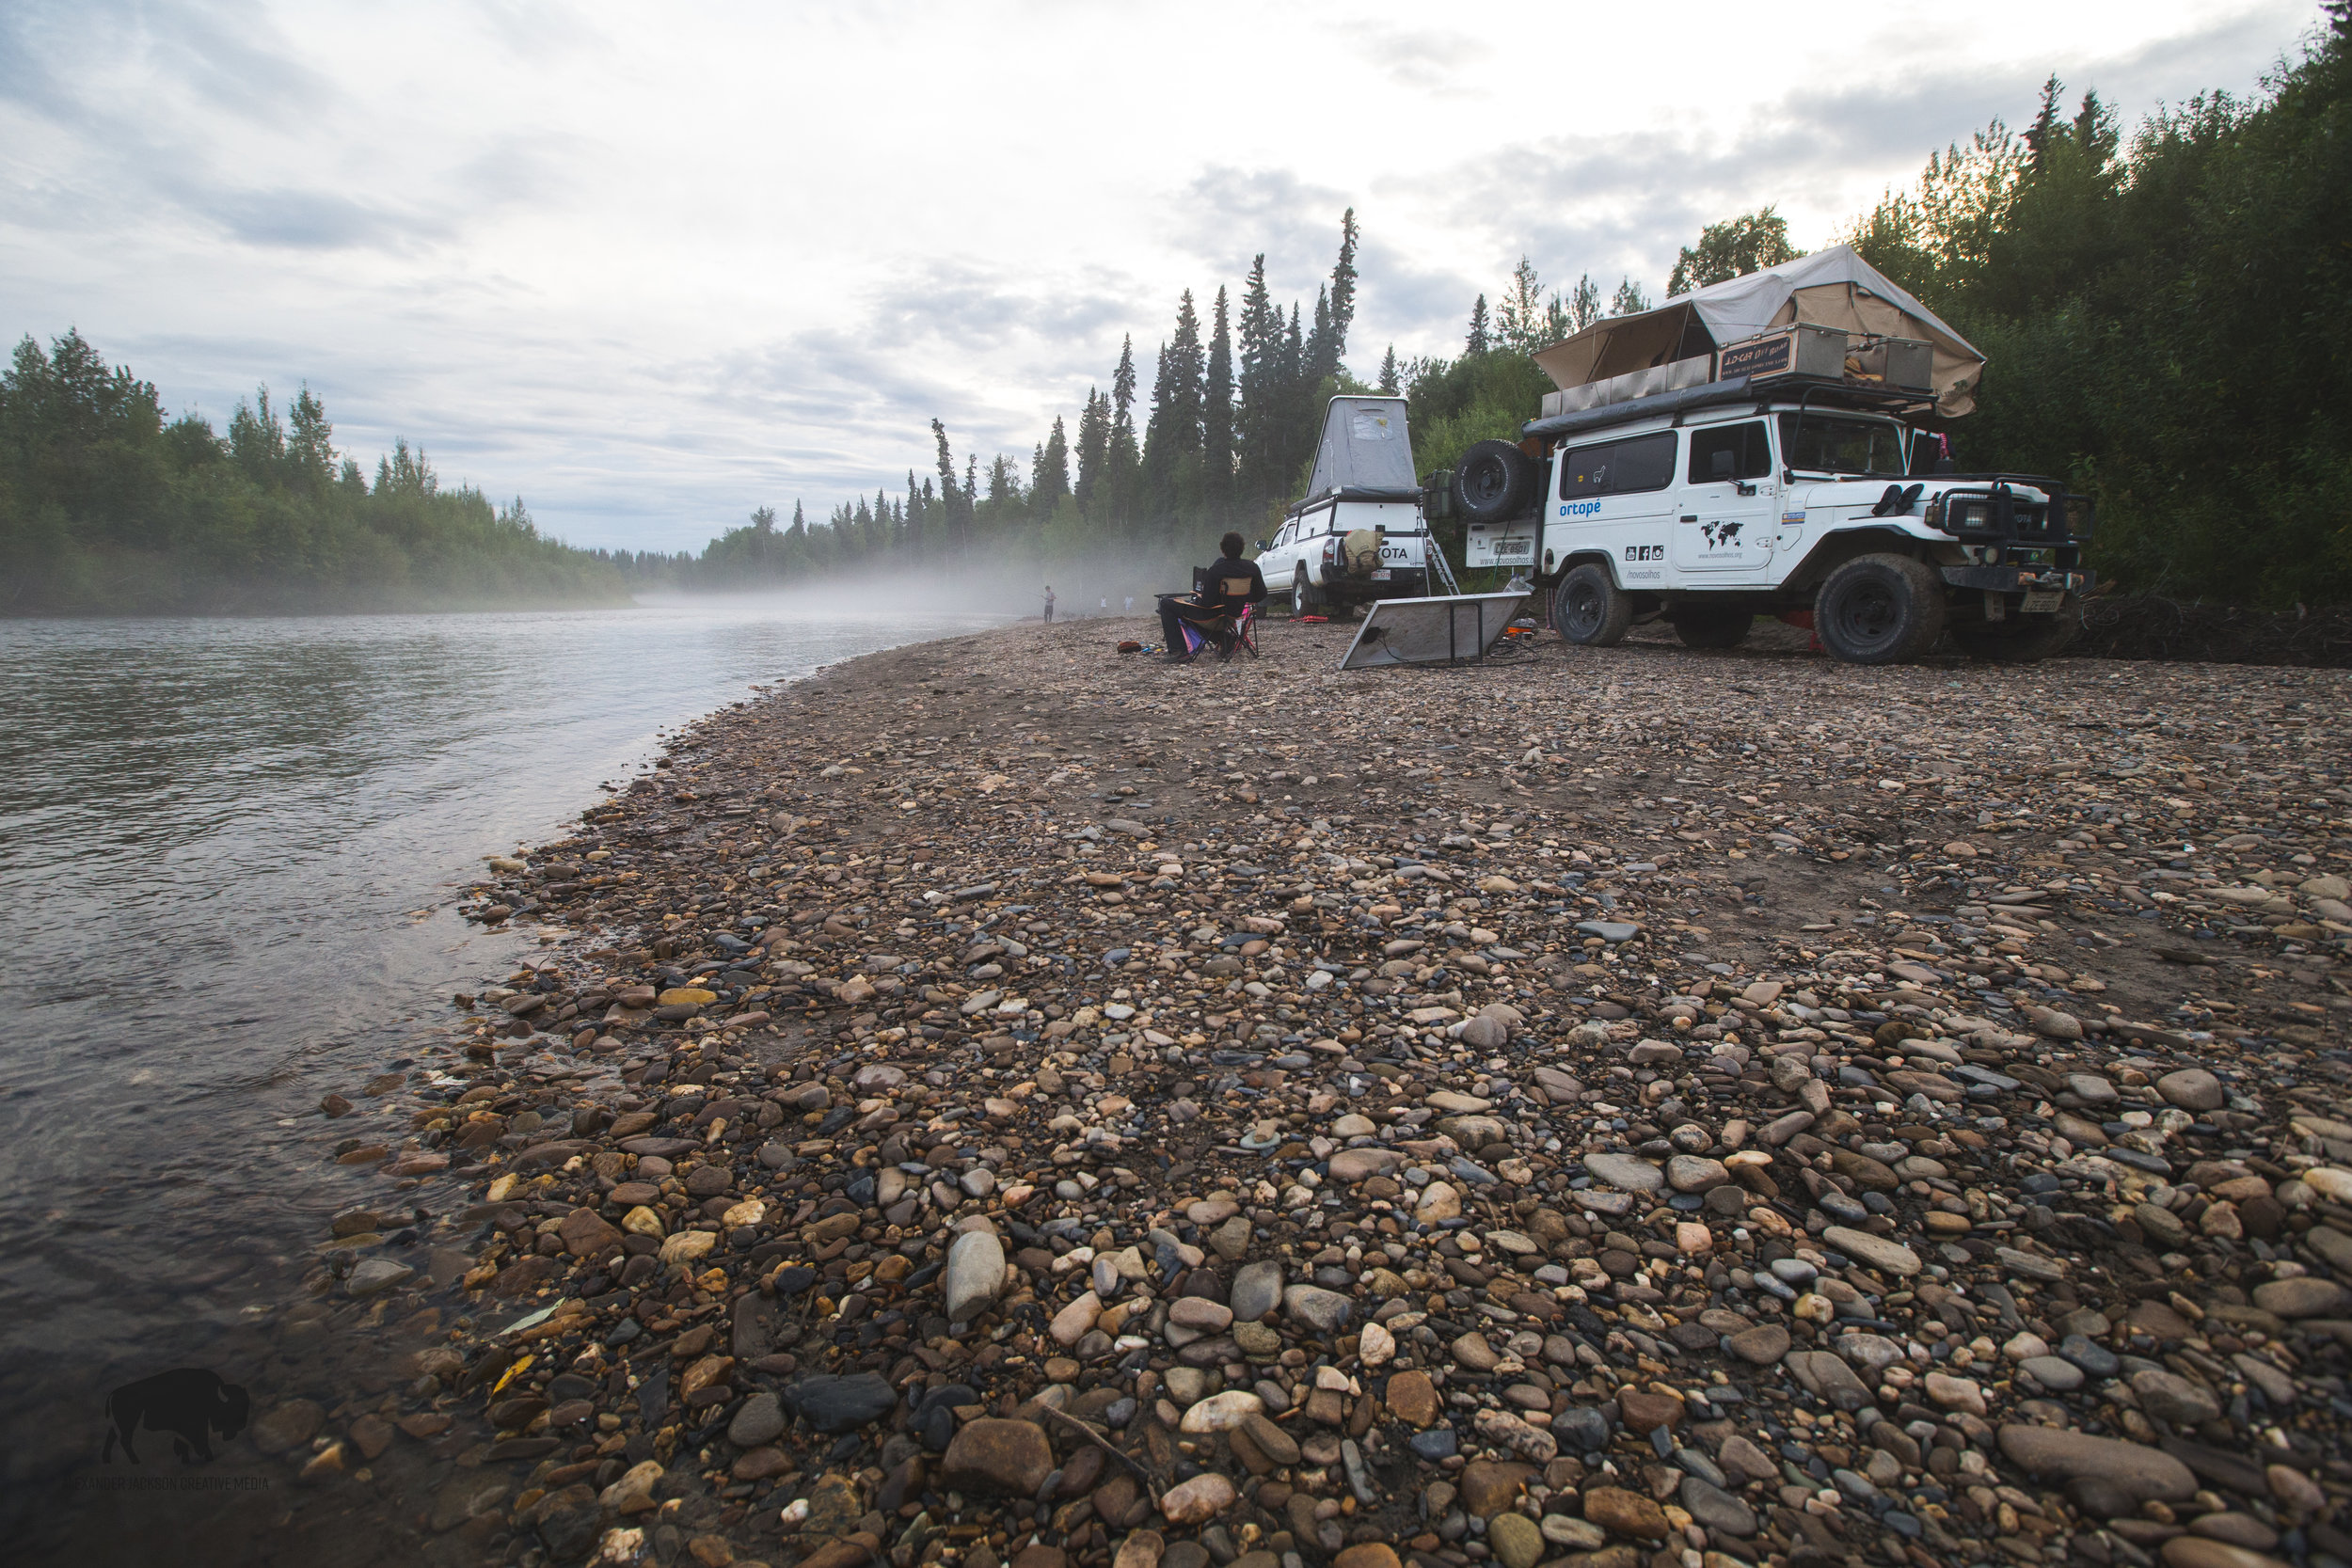 One of my favorite photos of my Chena River stay.